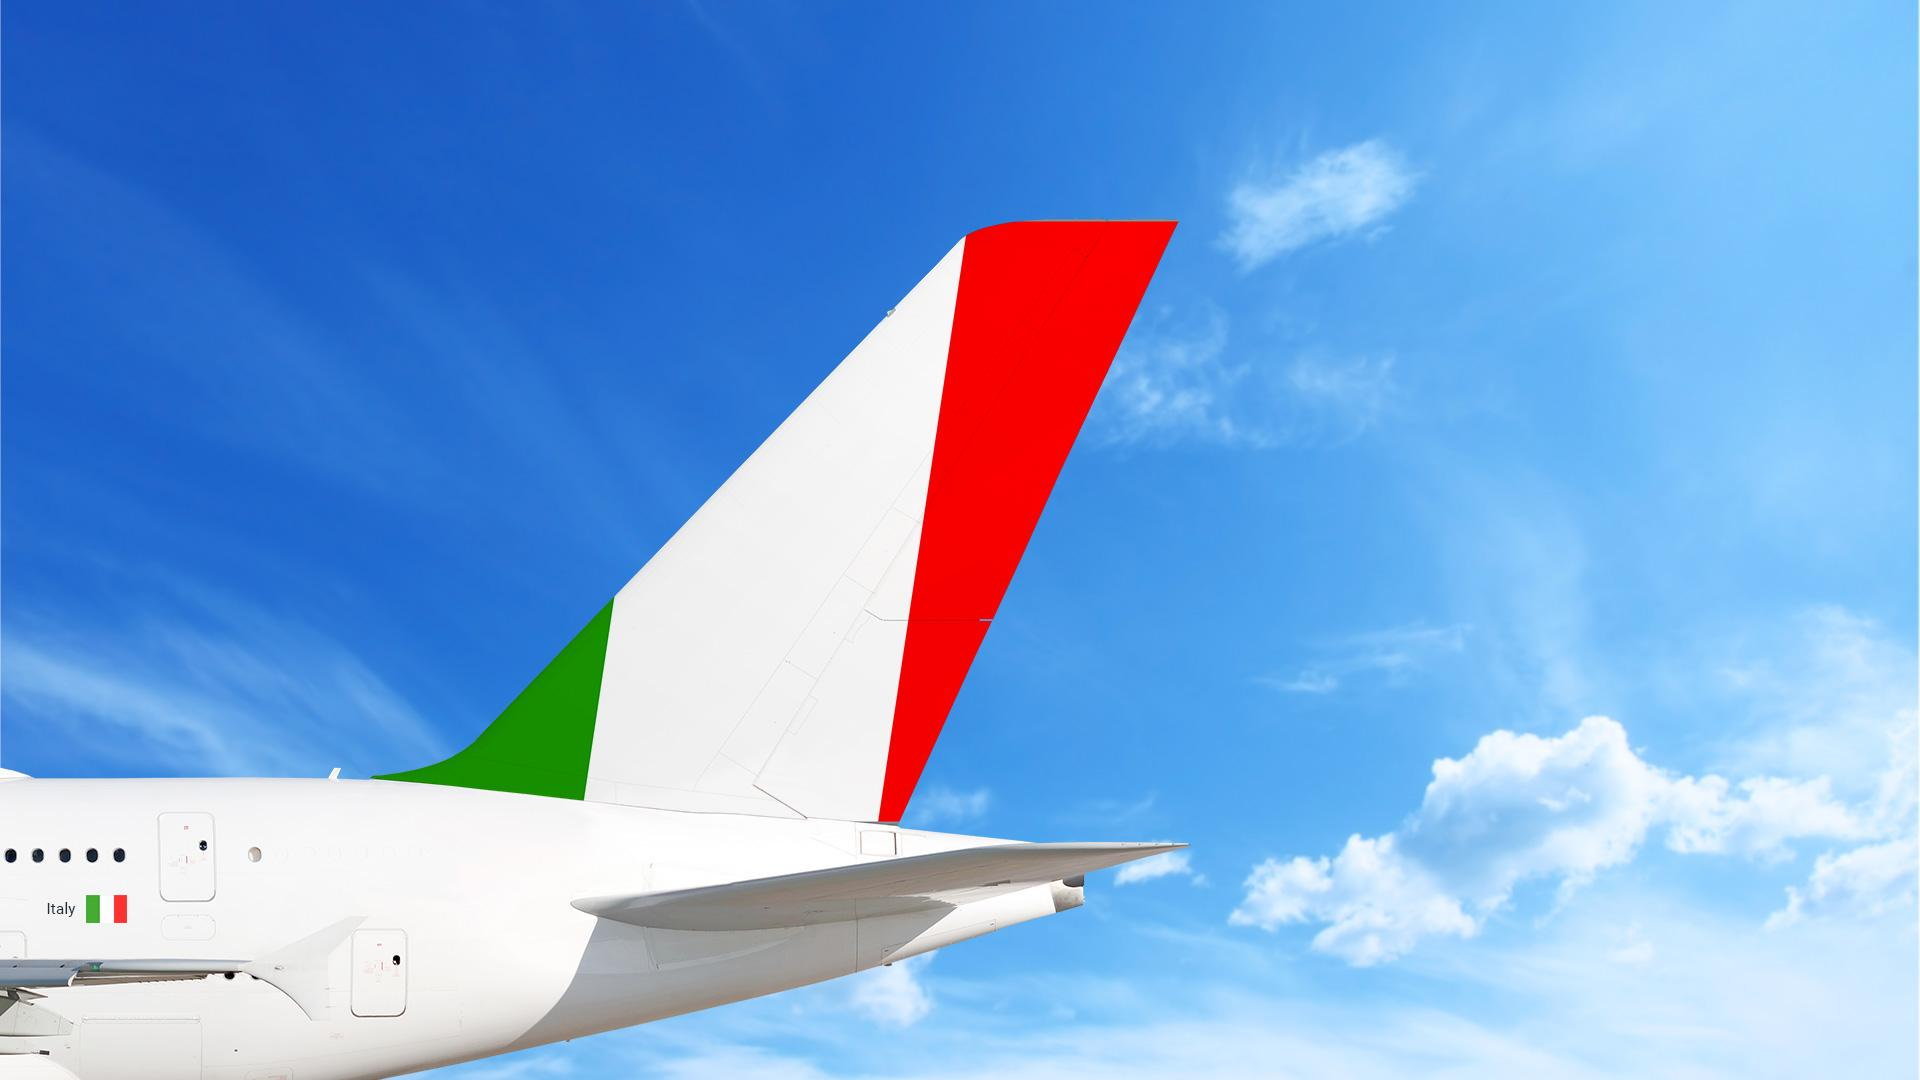 Airplane with Italian flag on tail